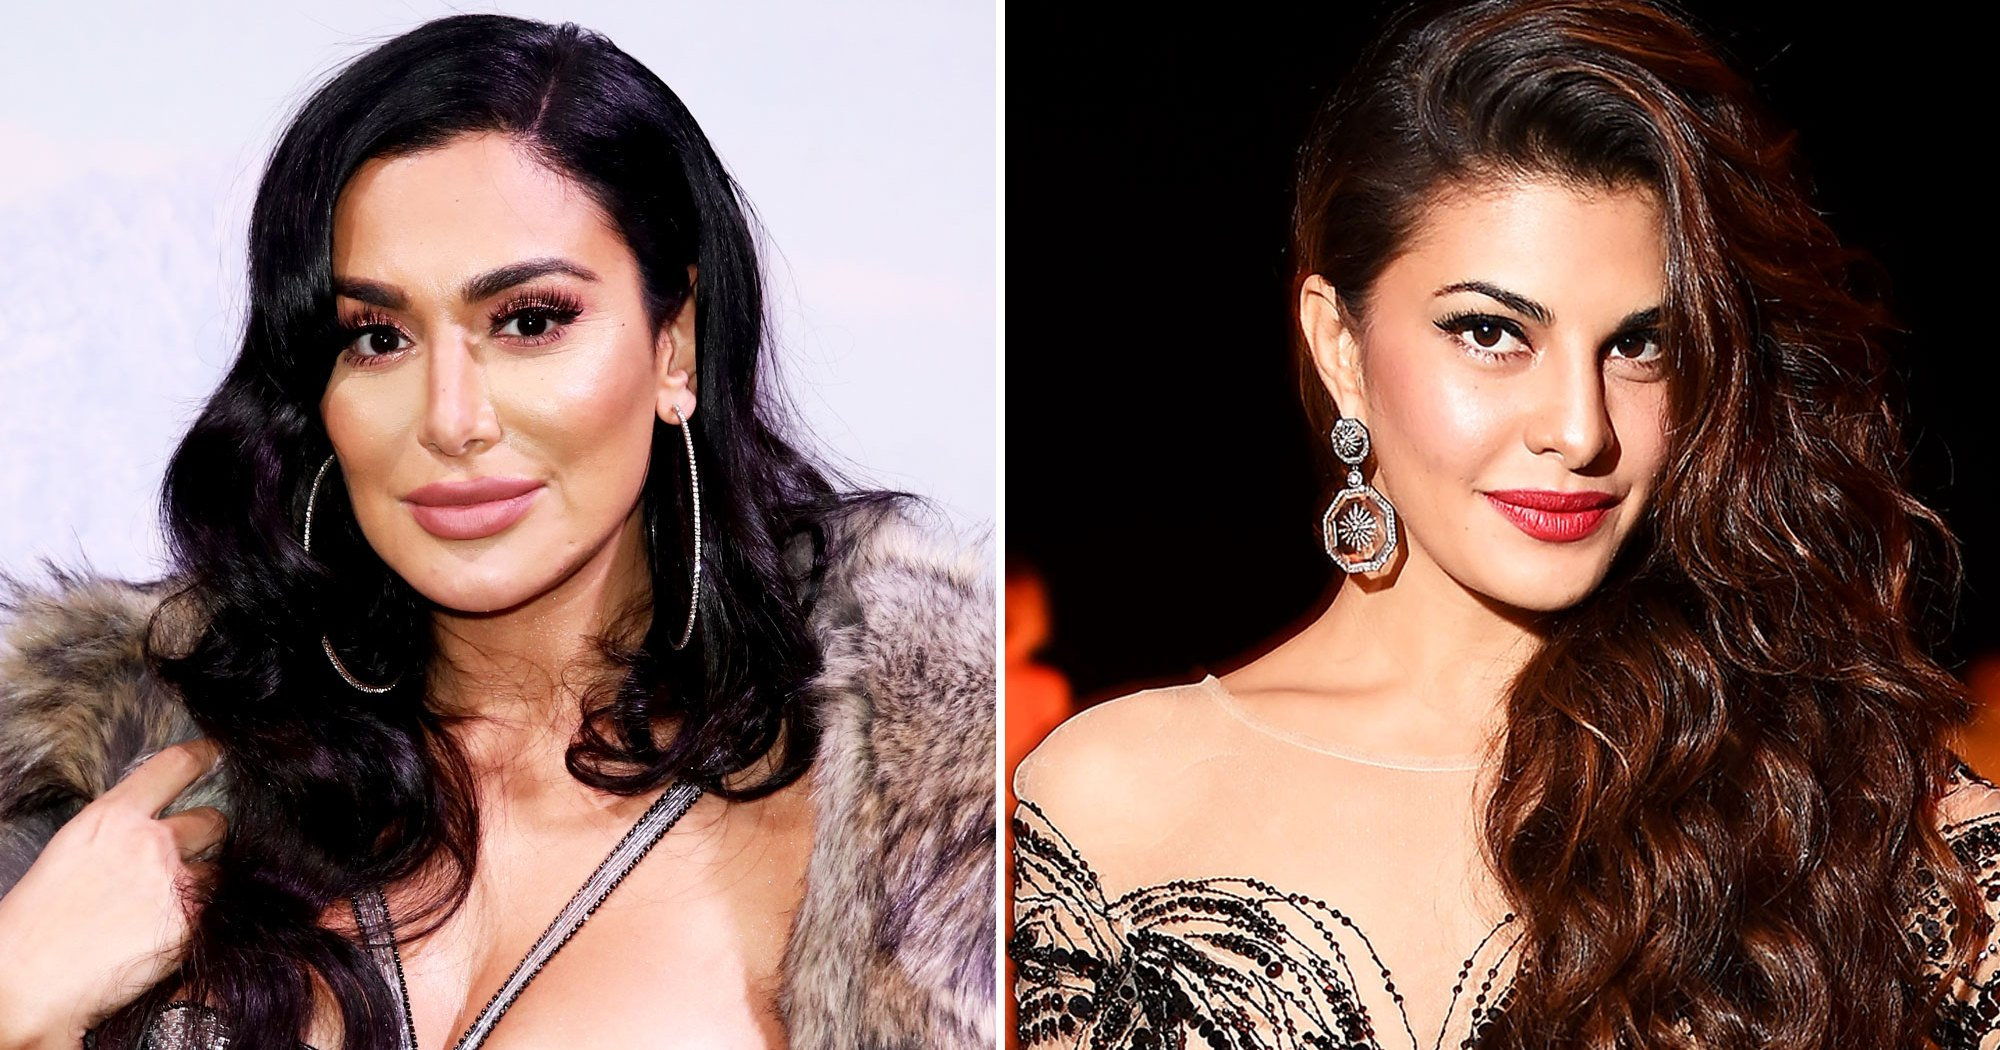 Huda Beauty x Jacqueline Fernandez: Everything We Know About the Bollywood Actress' Makeup Collab